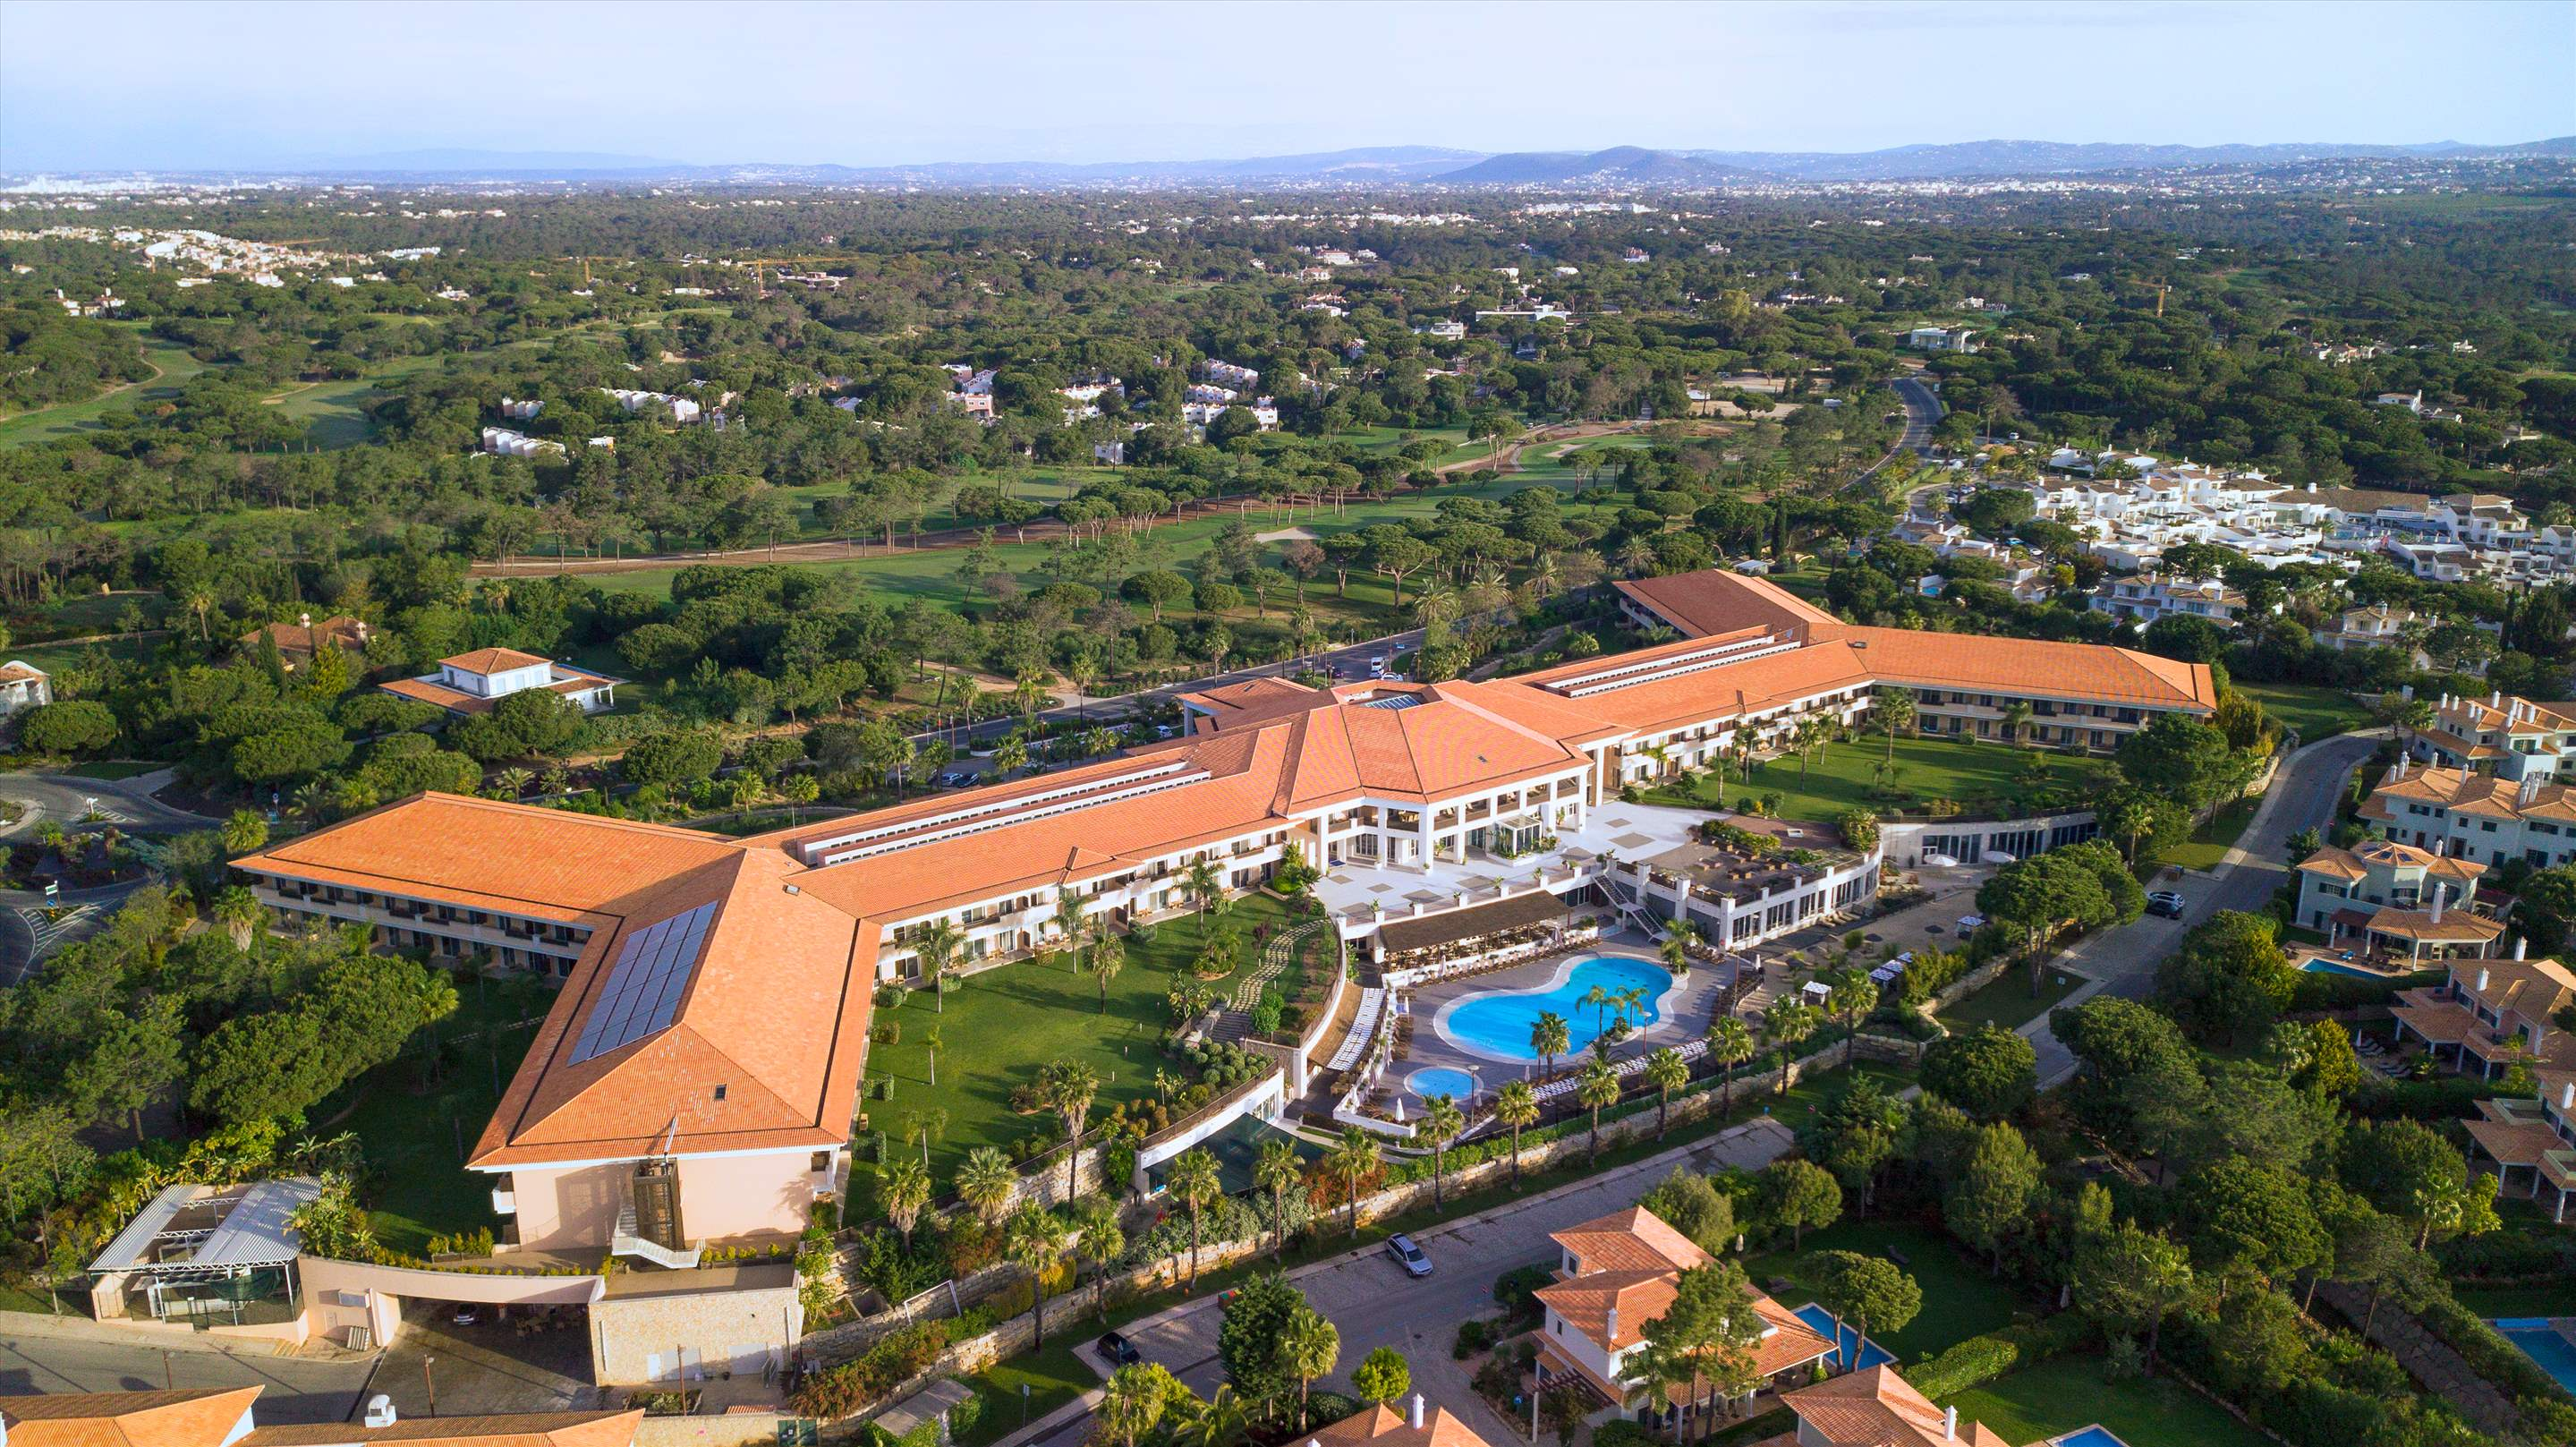 Wyndham Grand Algarve 2 Bedroom, Deluxe Family Suite, Pool Side, Room Only, 2 bedroom apartment in Wyndham Grand Algarve, Algarve Photo #34